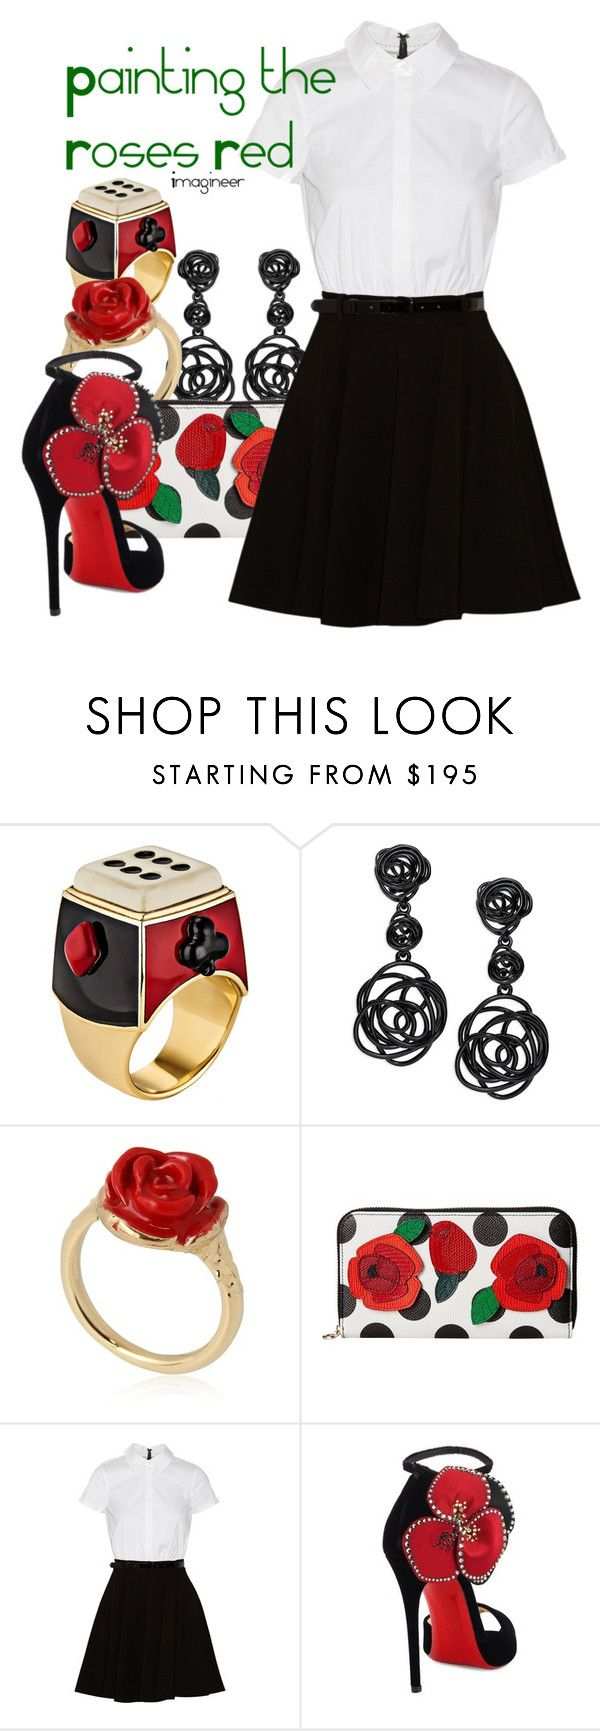 """Painting the Roses Red (Alice in Wonderland)"" by claucrasoda ❤ liked on Polyvore featuring Solange Azagury-Partridge, Oscar de la Renta, LeiVanKash, Dolce&Gabbana, Alice + Olivia and Christian Louboutin"